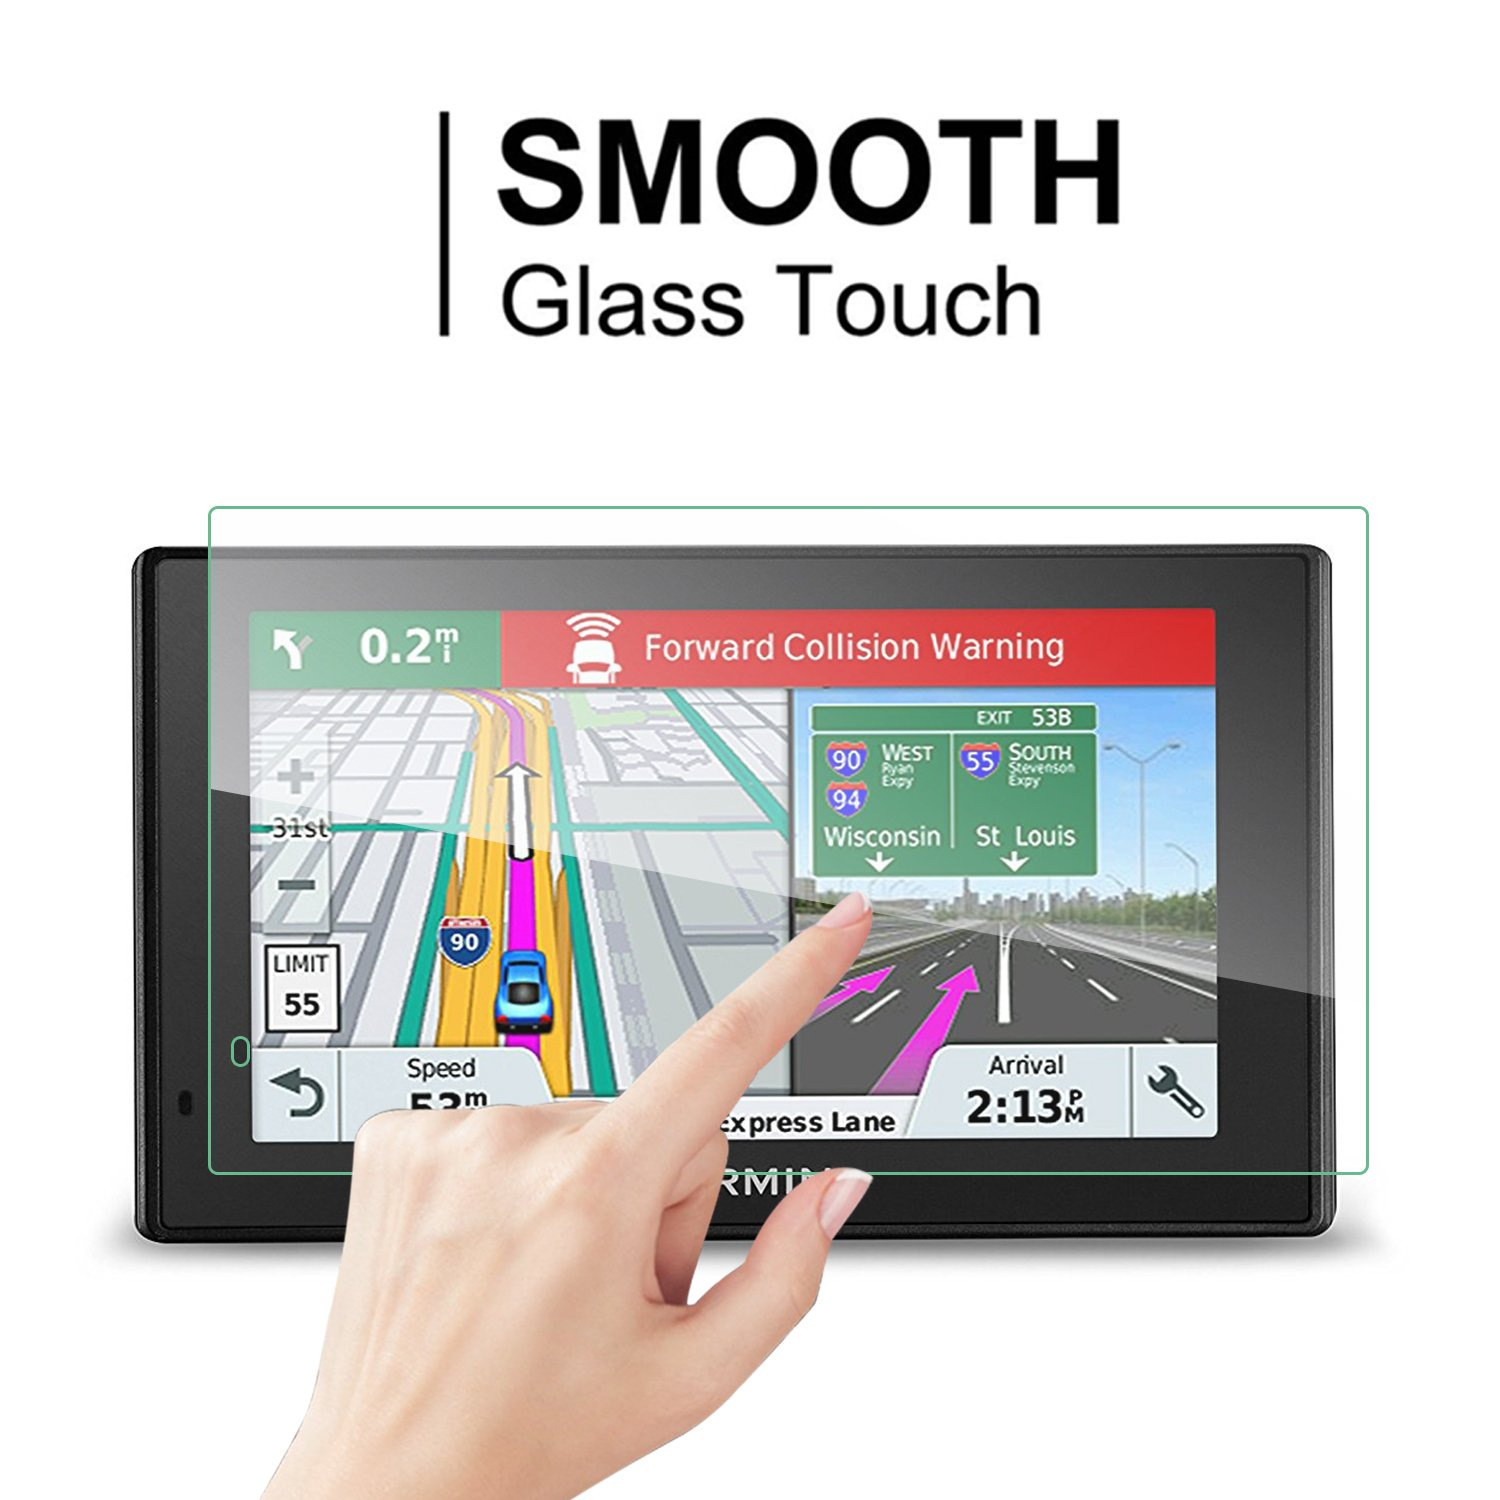 2PCS GLASS GPS Screen Protector for Garmin DriveSmart 50 51 LMT LMTHD 5 Inch, LFOTPP 9H Tempered GLASS Guard Shield Scratch-resistant Ultra HD Extreme Clarity